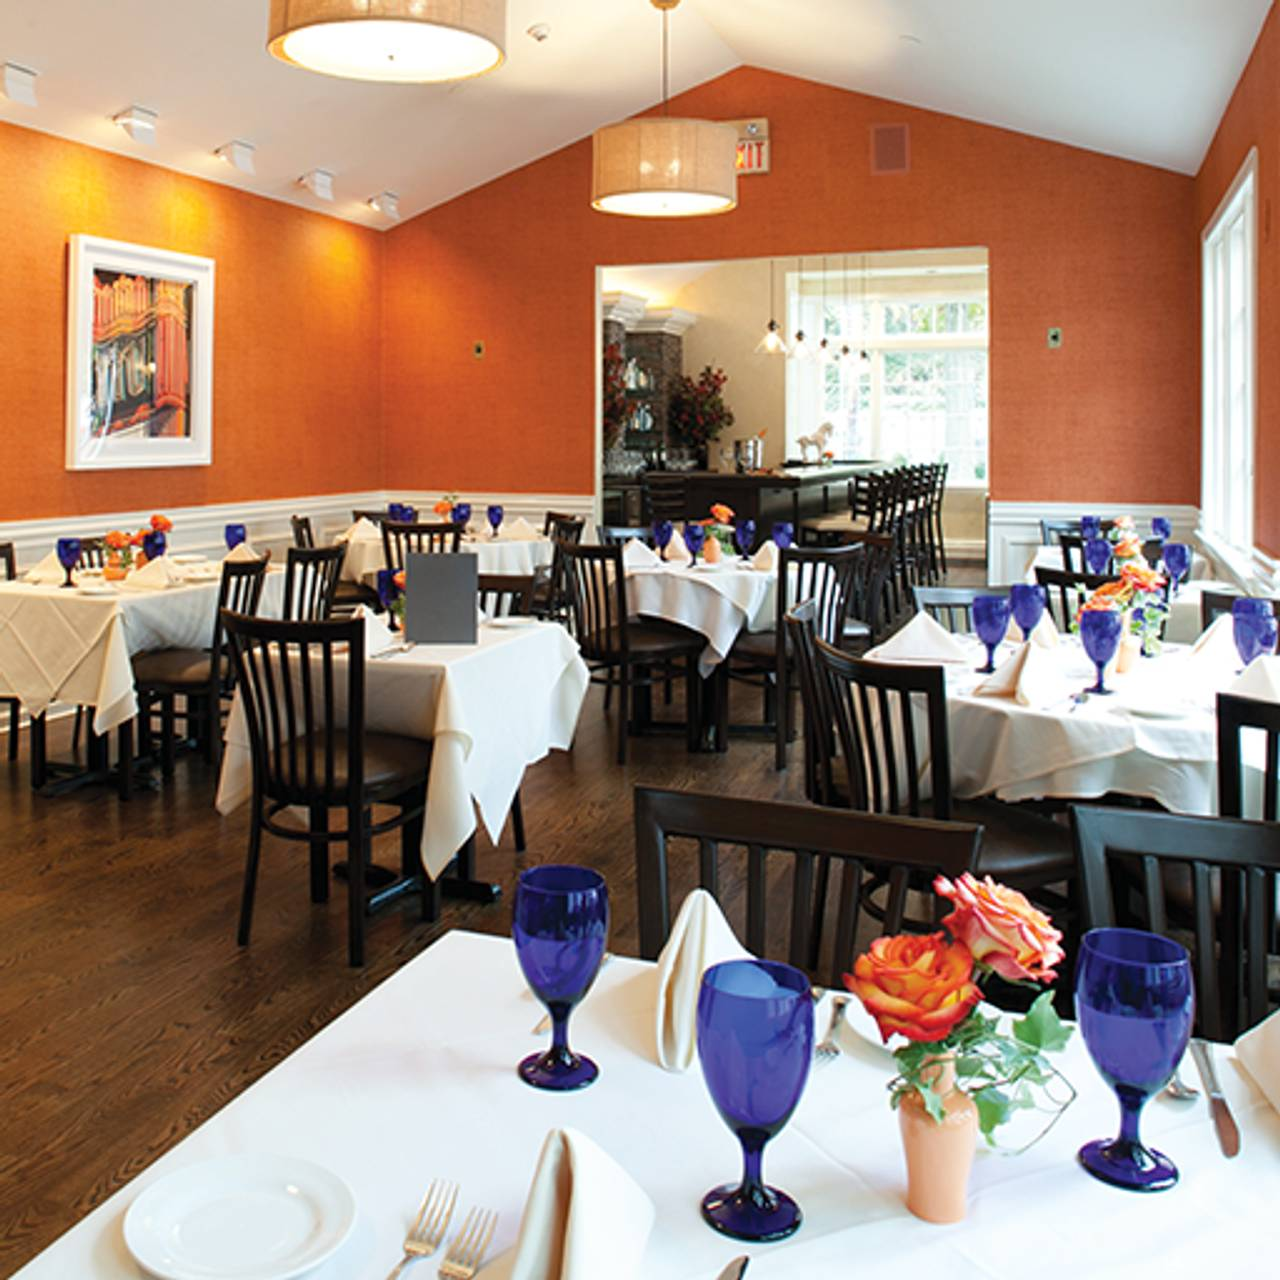 Interior Carriage House Restaurant Millburn Nj